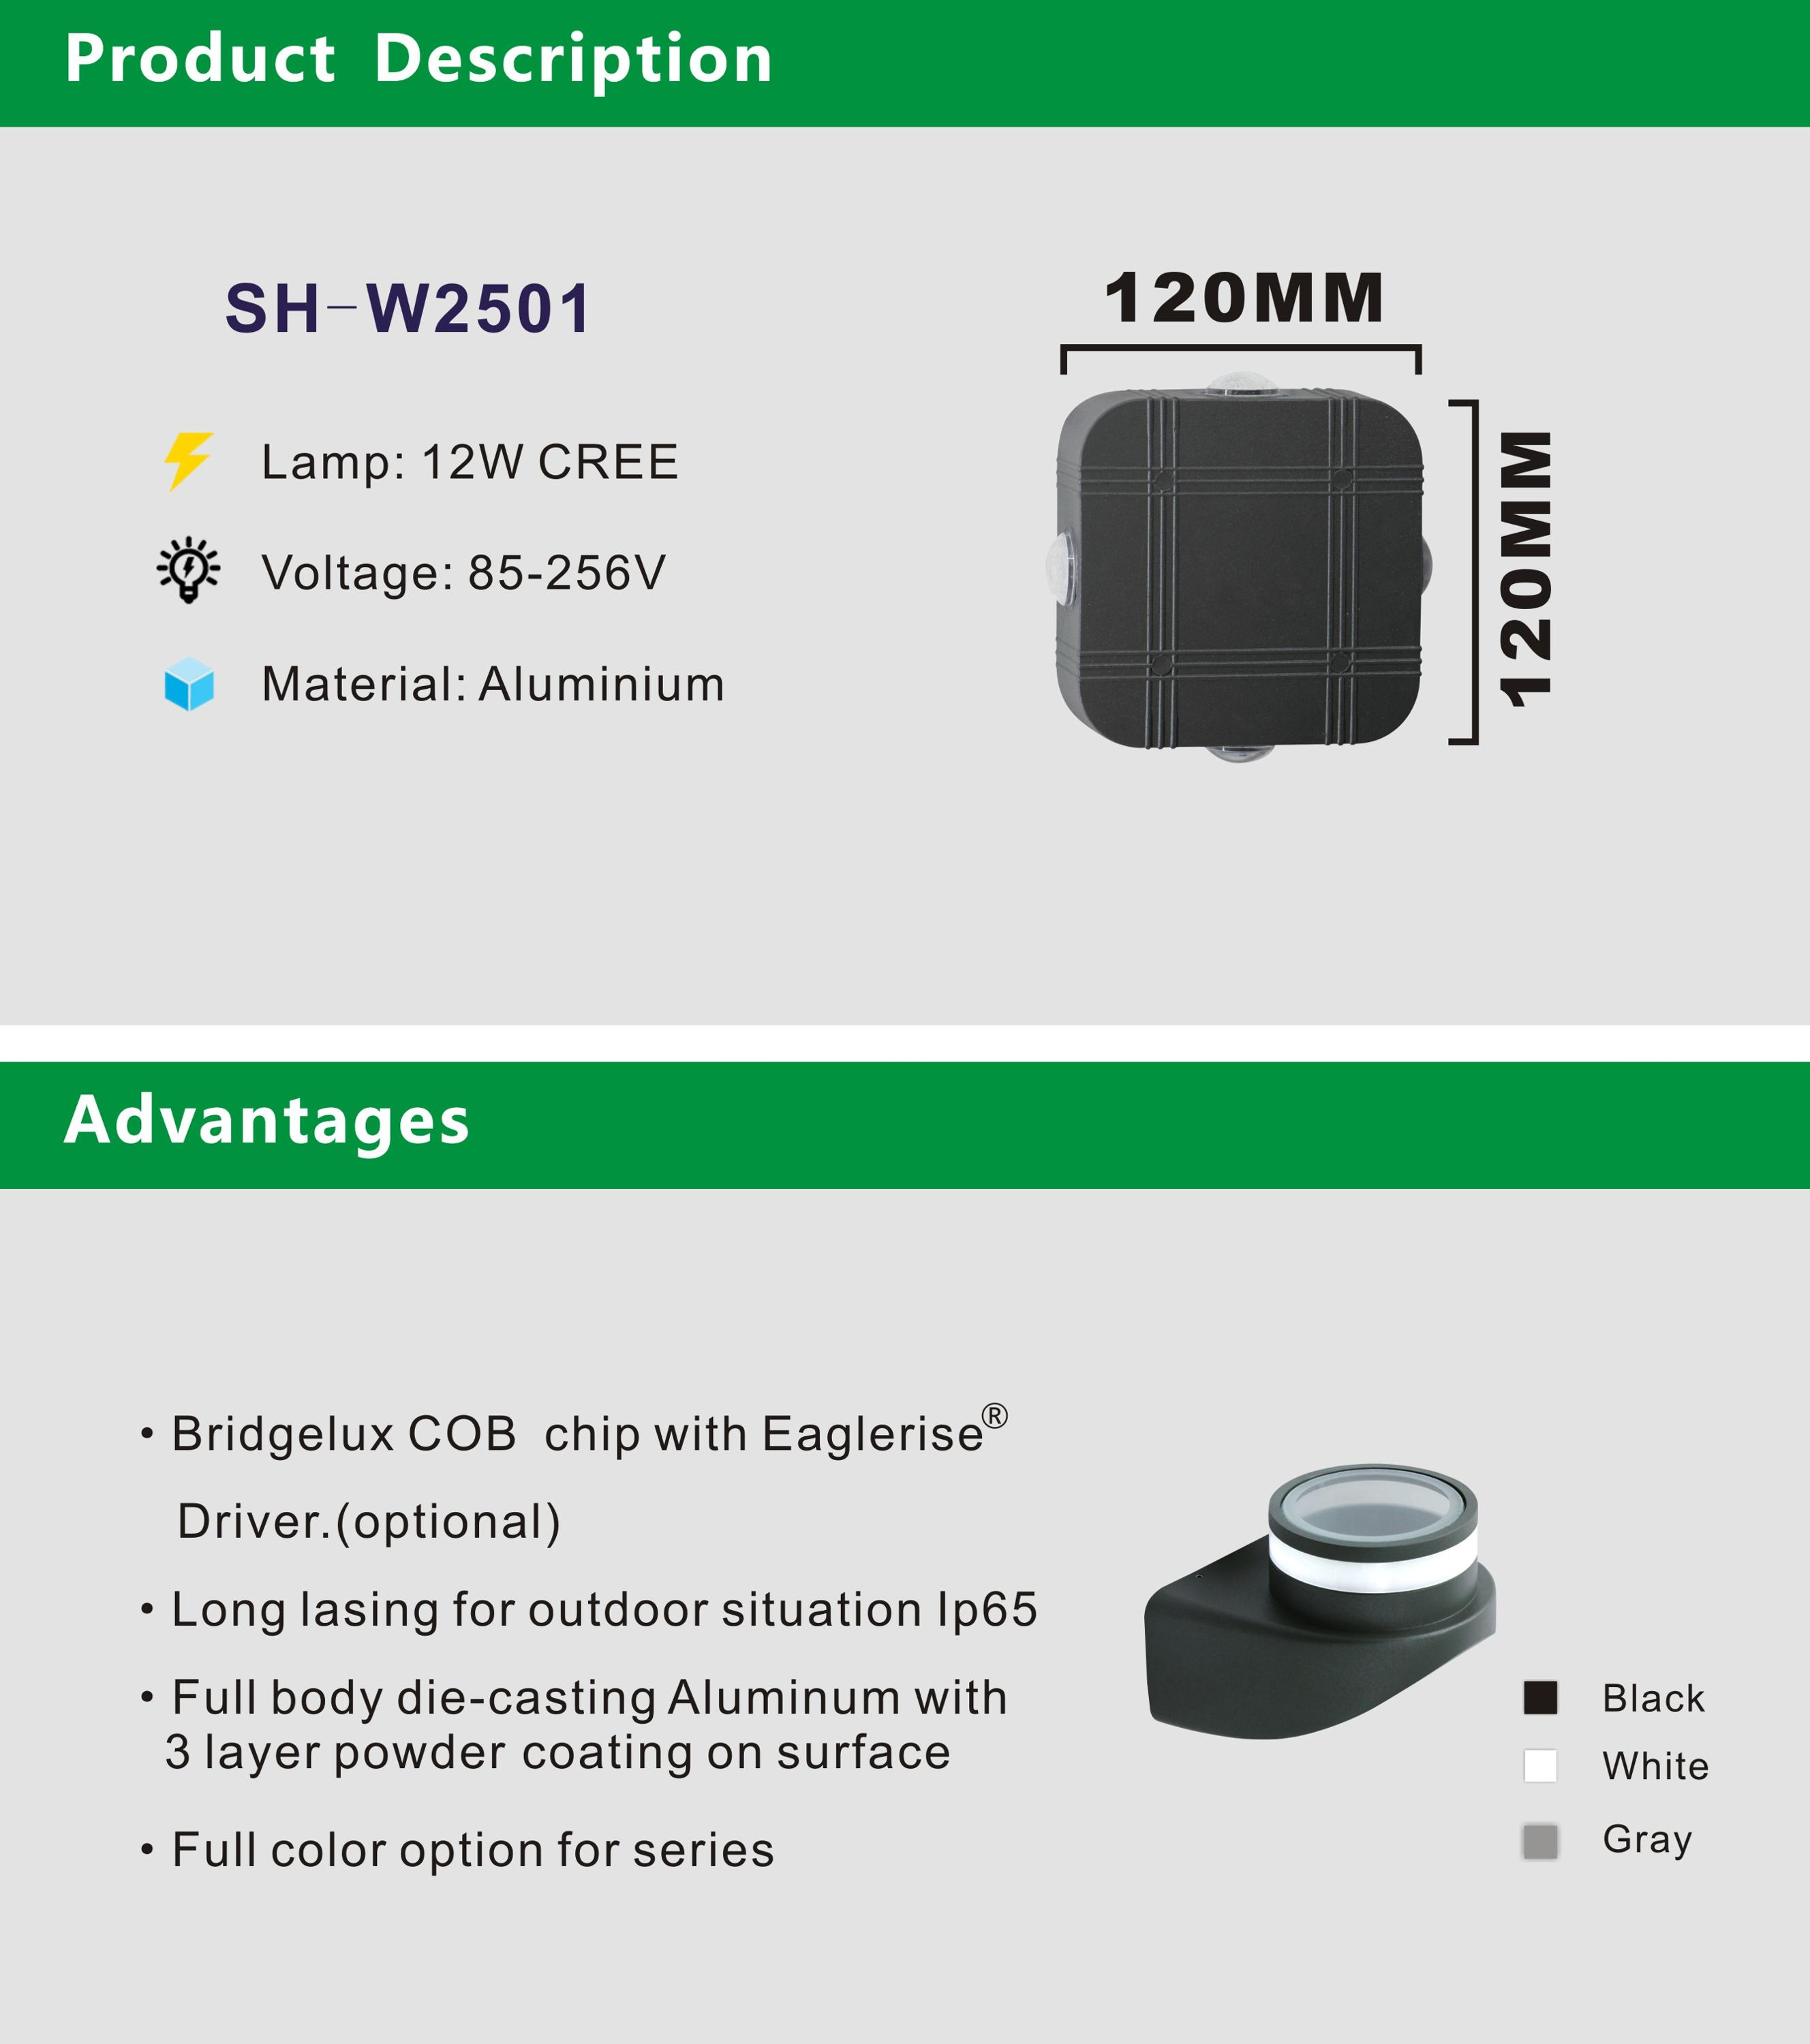 SH-W2501 Aluminum IP65 Waterproof Square 4x3w Grey Shell LED Wall Lamps